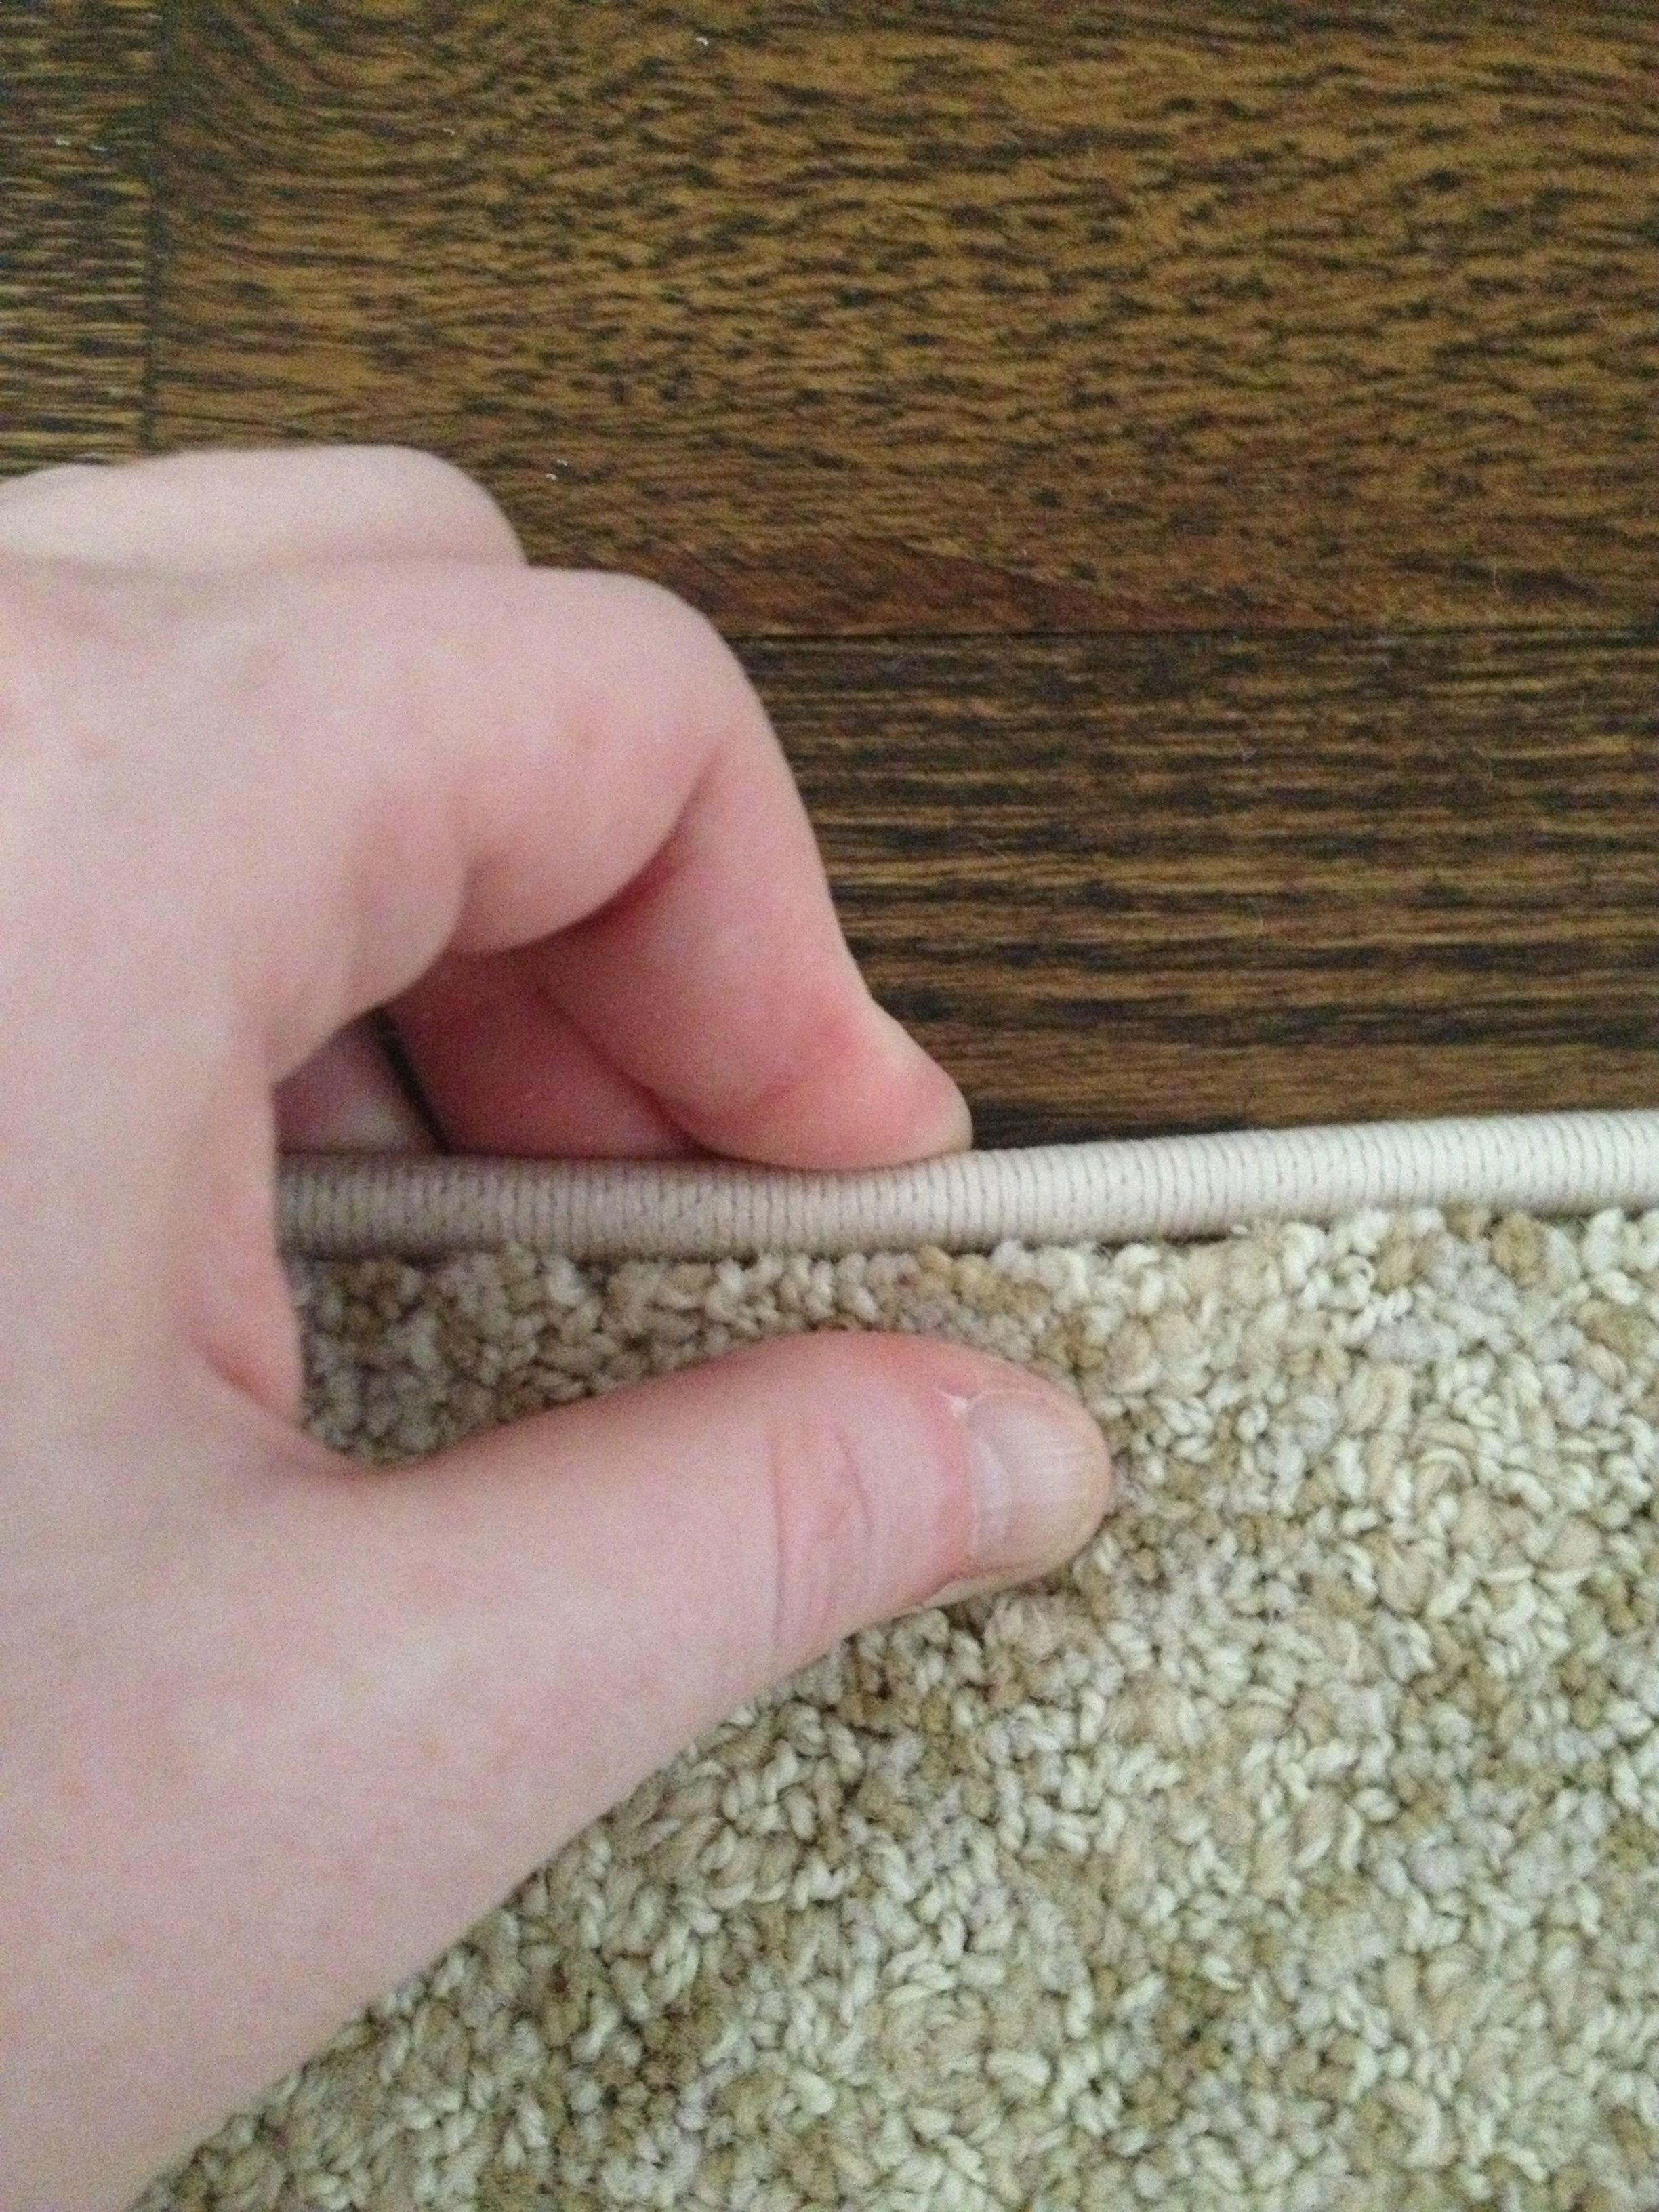 How to Turn a Carpet Remnant into a Rug | Carpet remnants ...